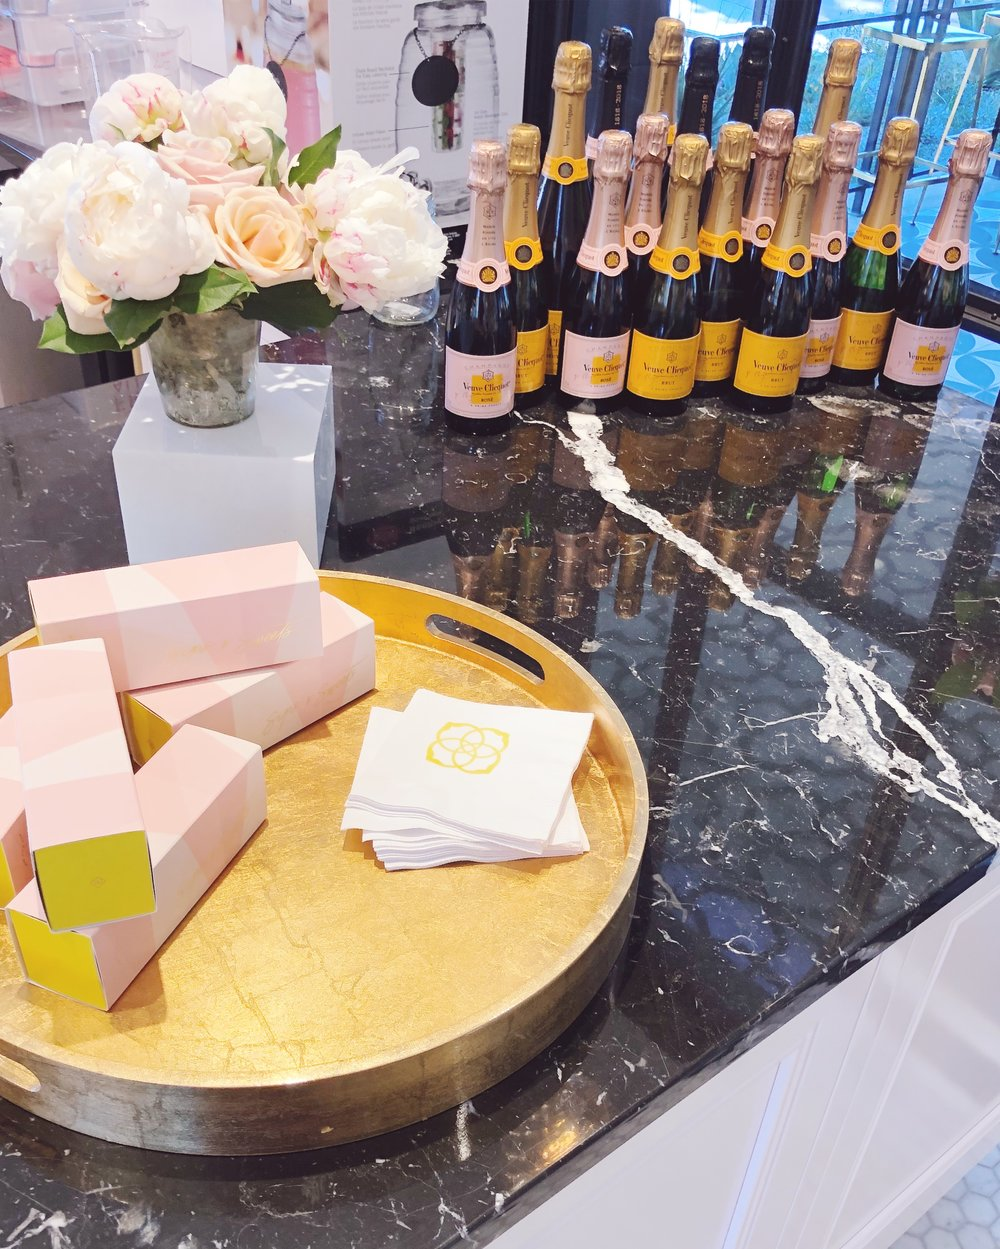 kendra scott sips and sweets store cafe